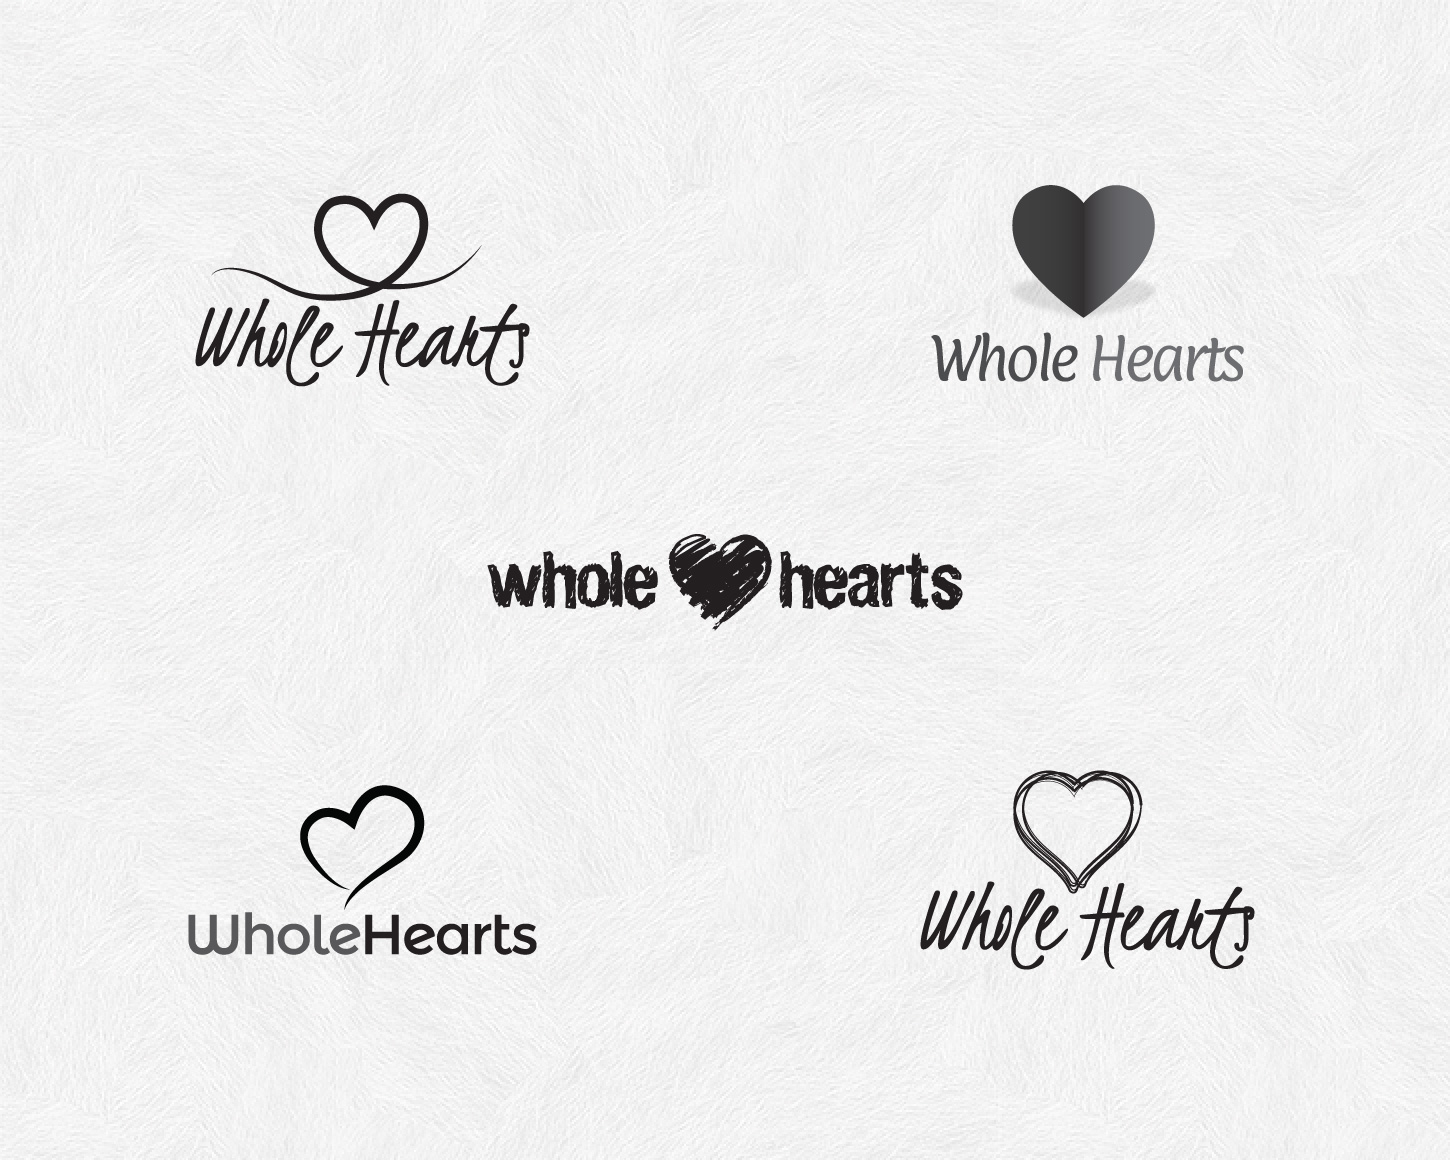 Whole Hearts branding